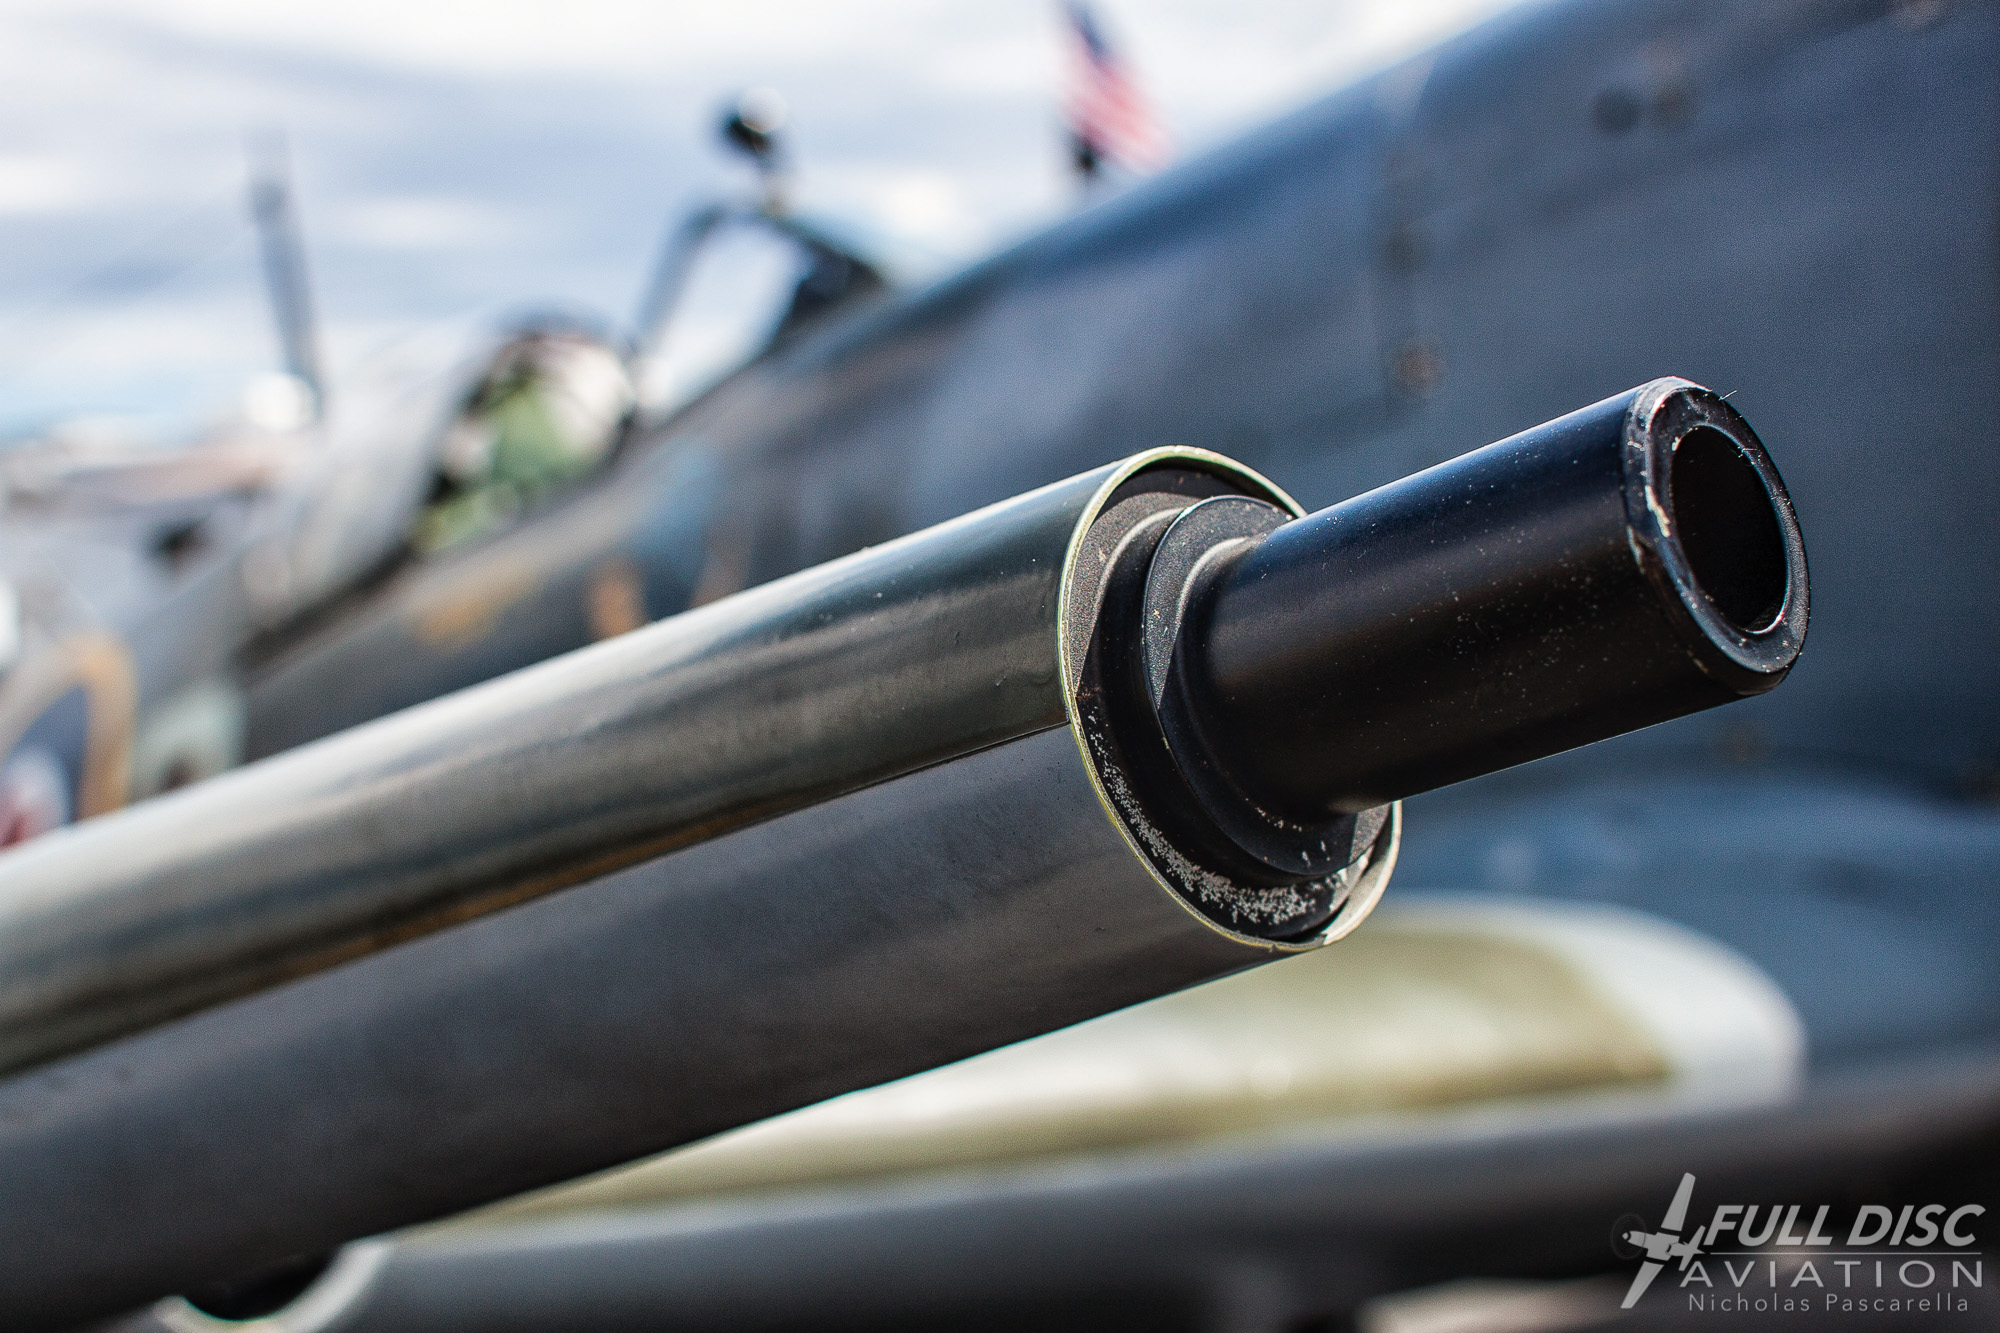 Spitfire Cannon f/5.0, 1/400, ISO 100...the aperture is almost wide open here, showing a nice depth of field.